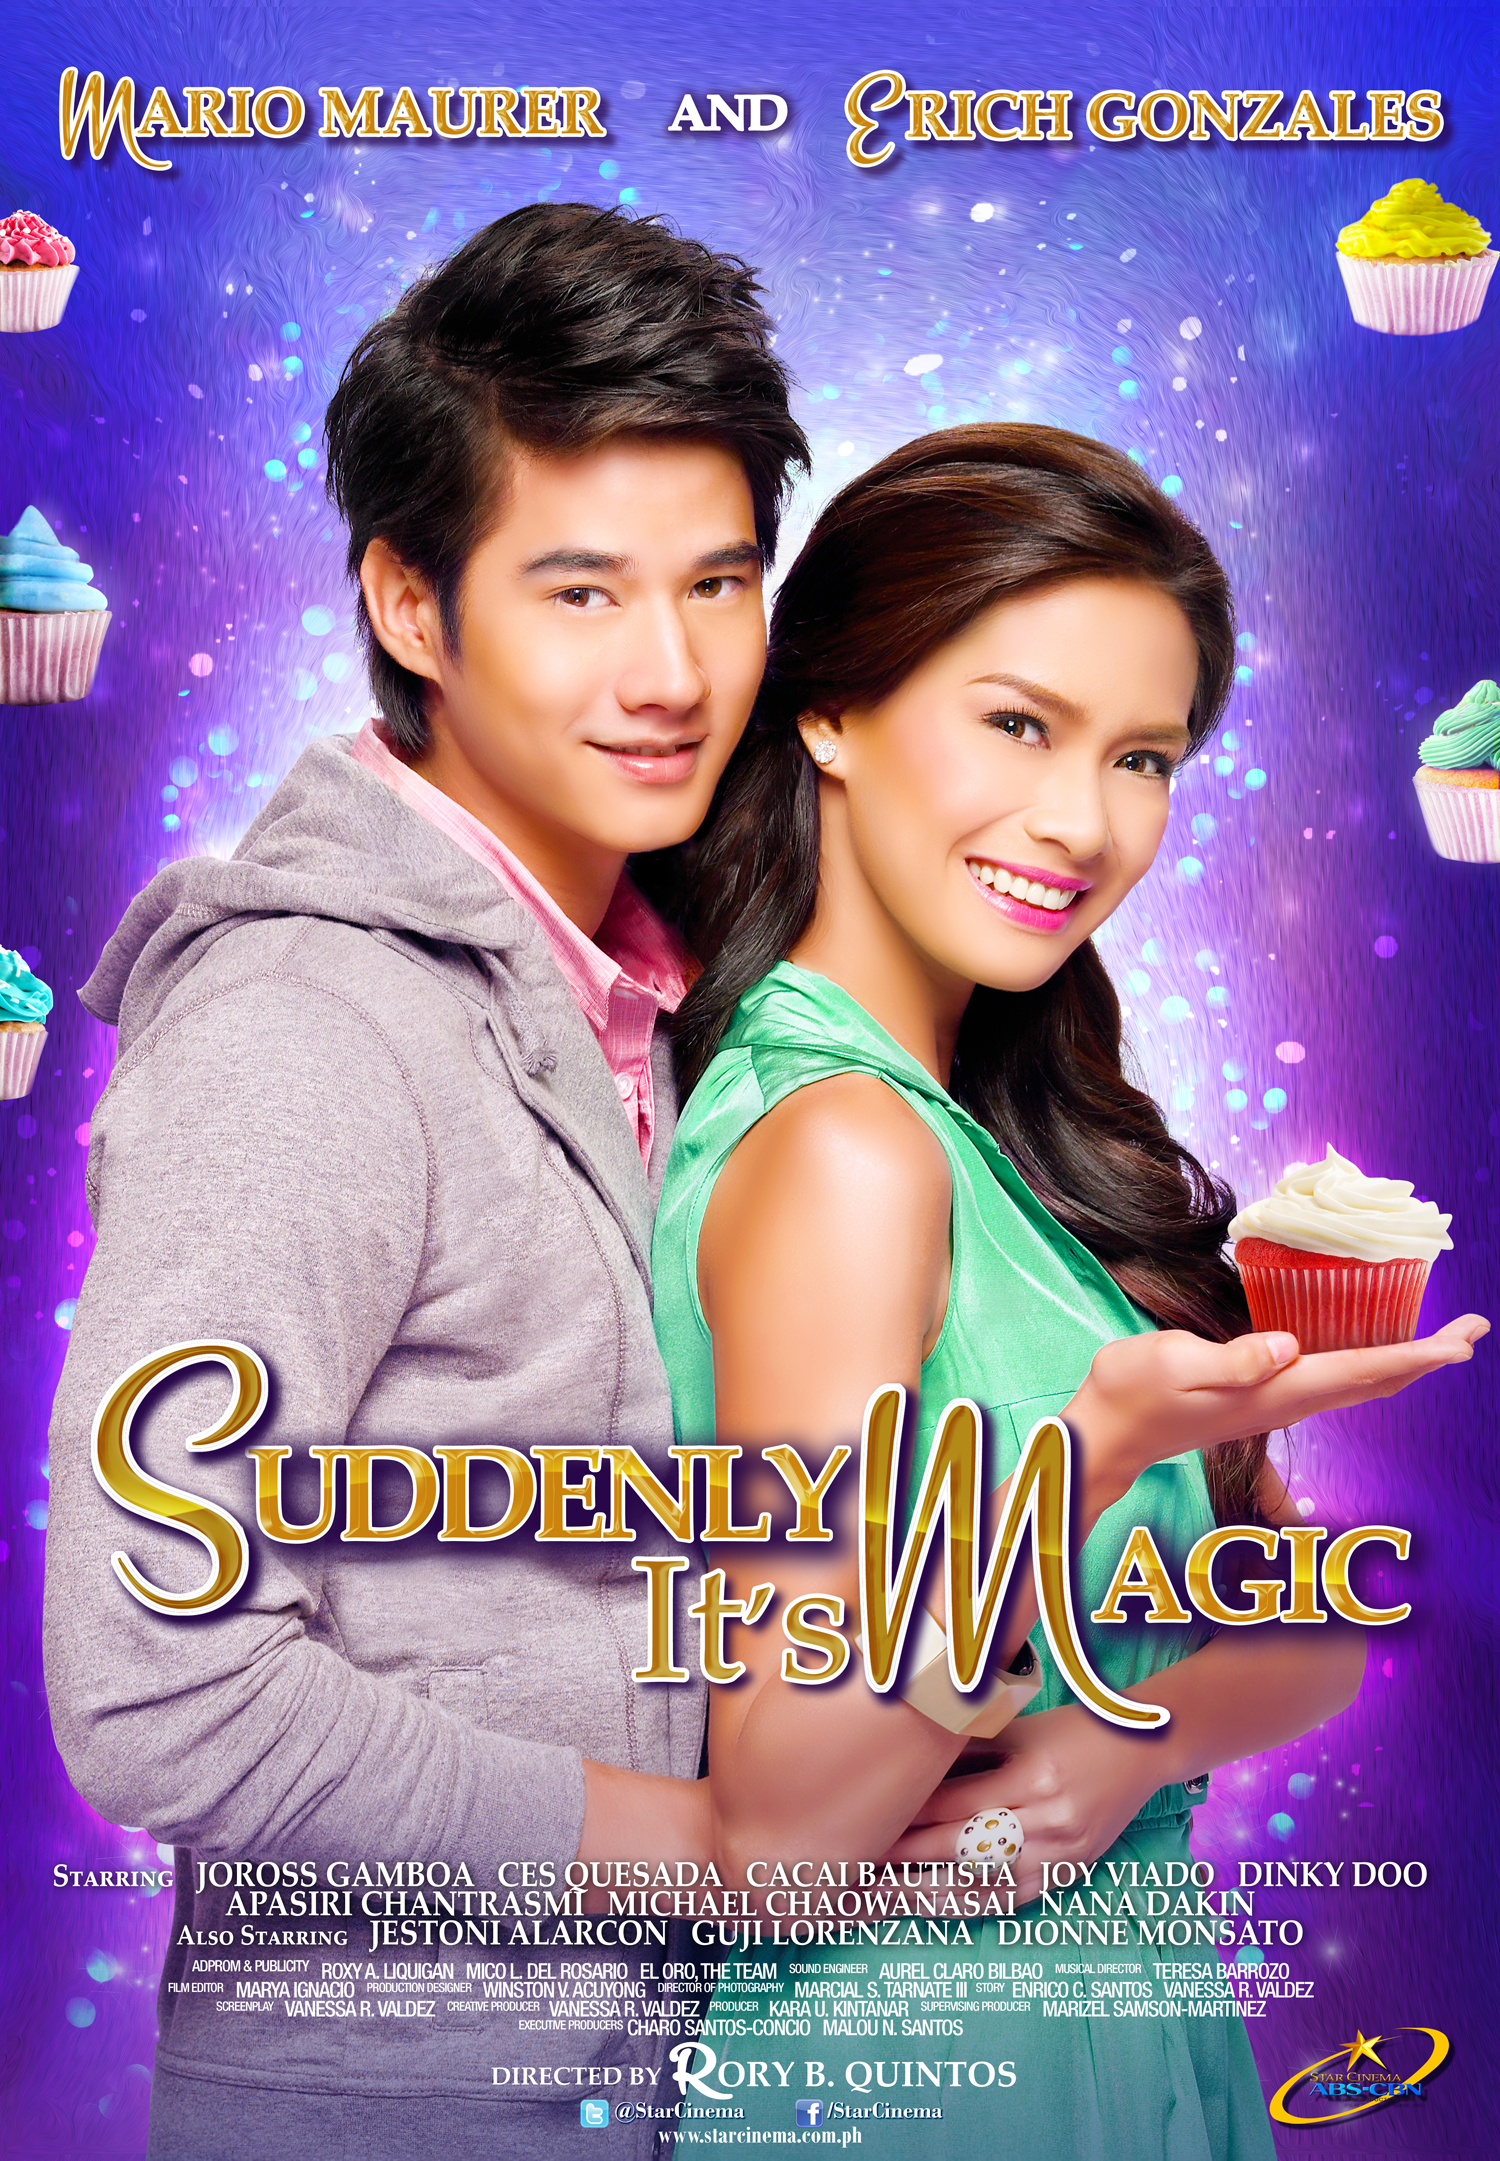 REVIEW: Suddenly It's Magic | TIT FOR TAT